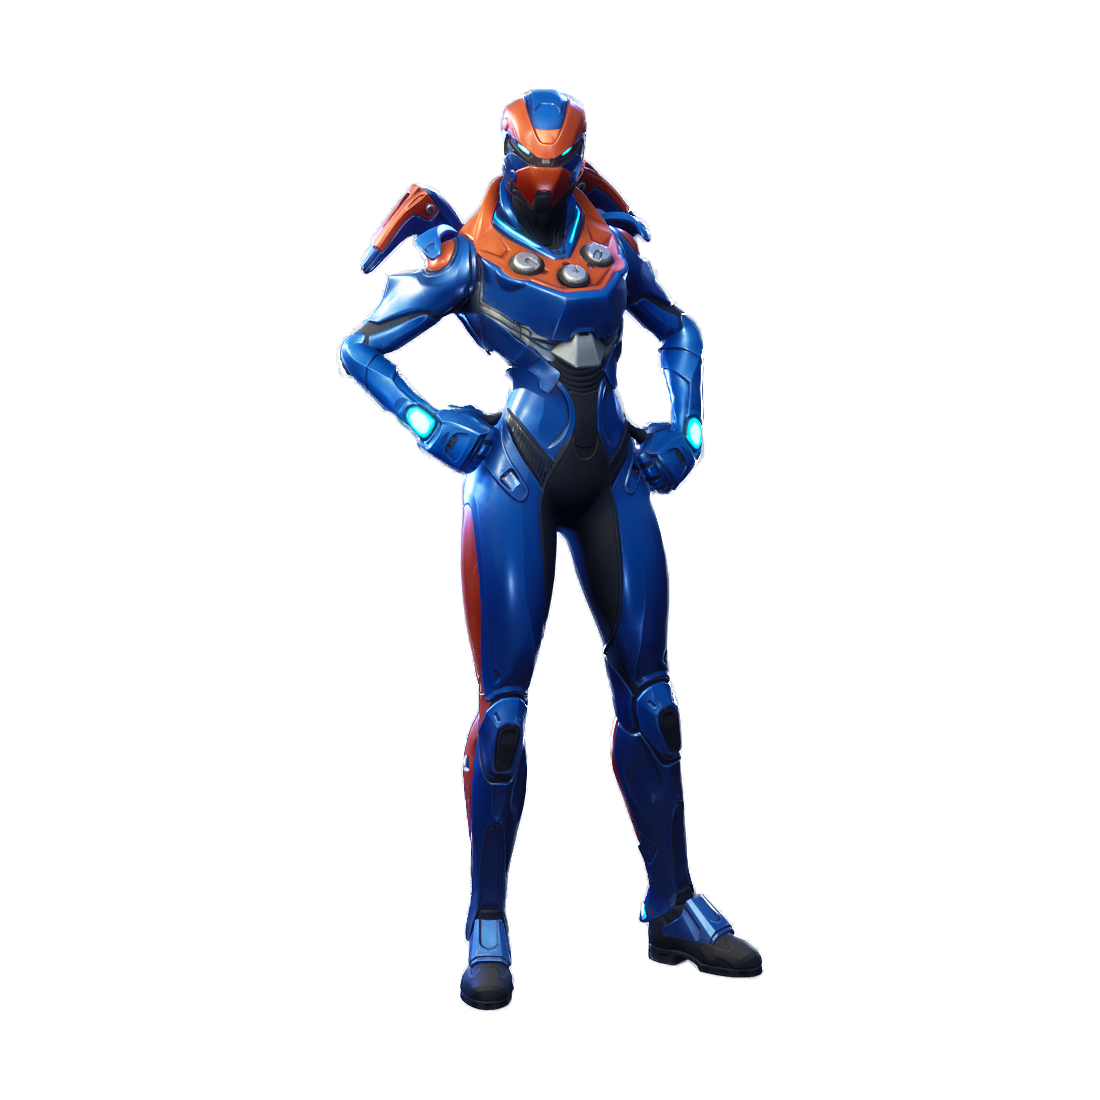 Loot crate fortnite png. Legendary criterion outfit cosmetic